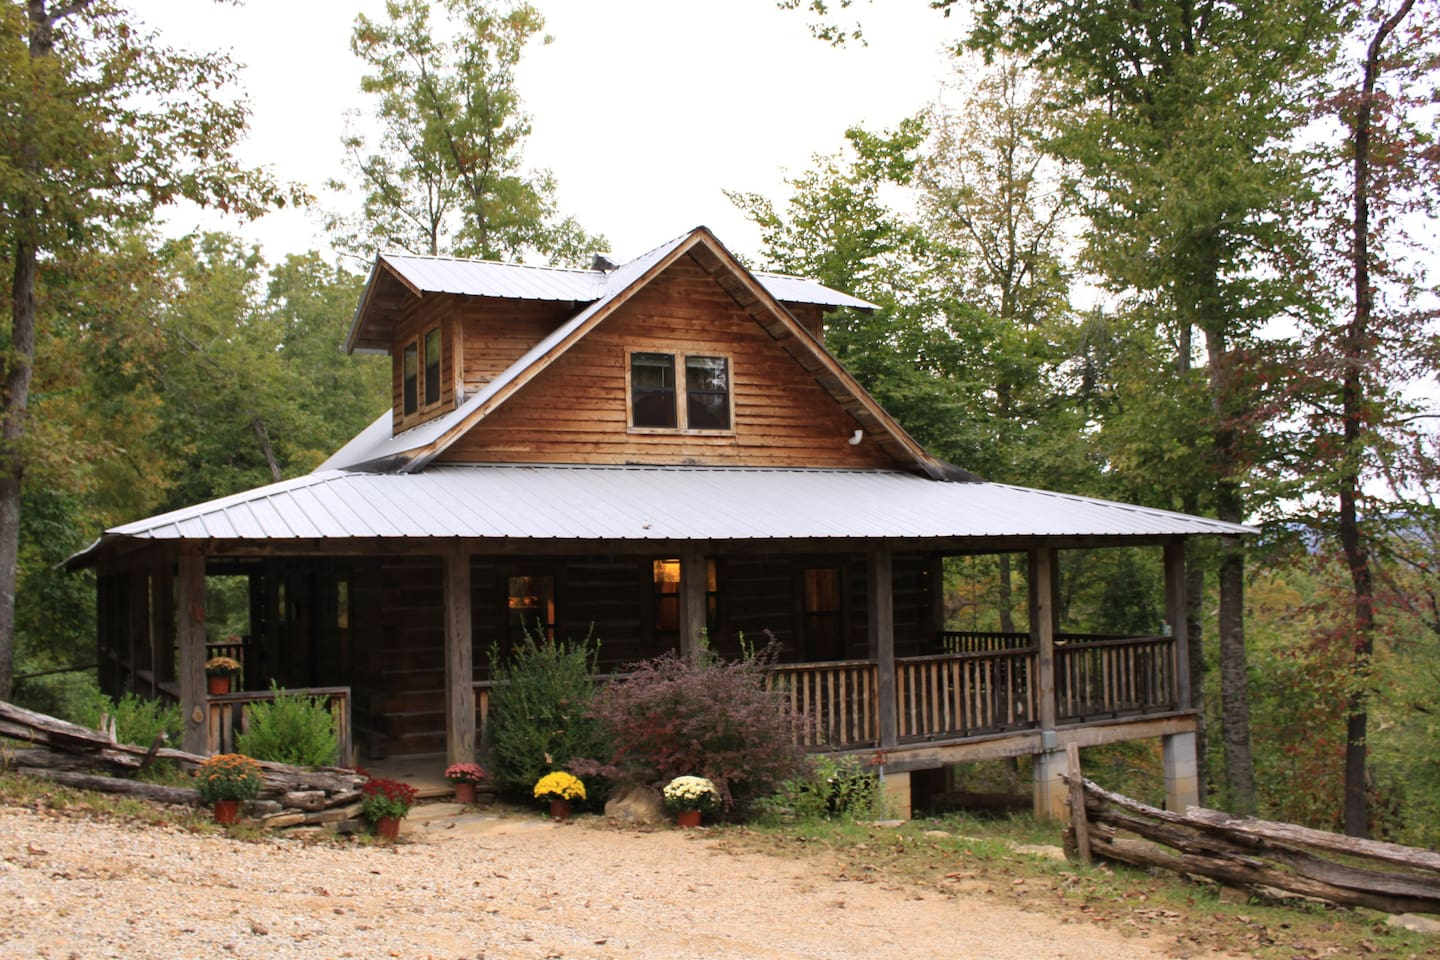 yards cabins hotels image from luxury comfortable well equipped ha cabin the home jasper bed beach arkansas s deal area property conservation and in near